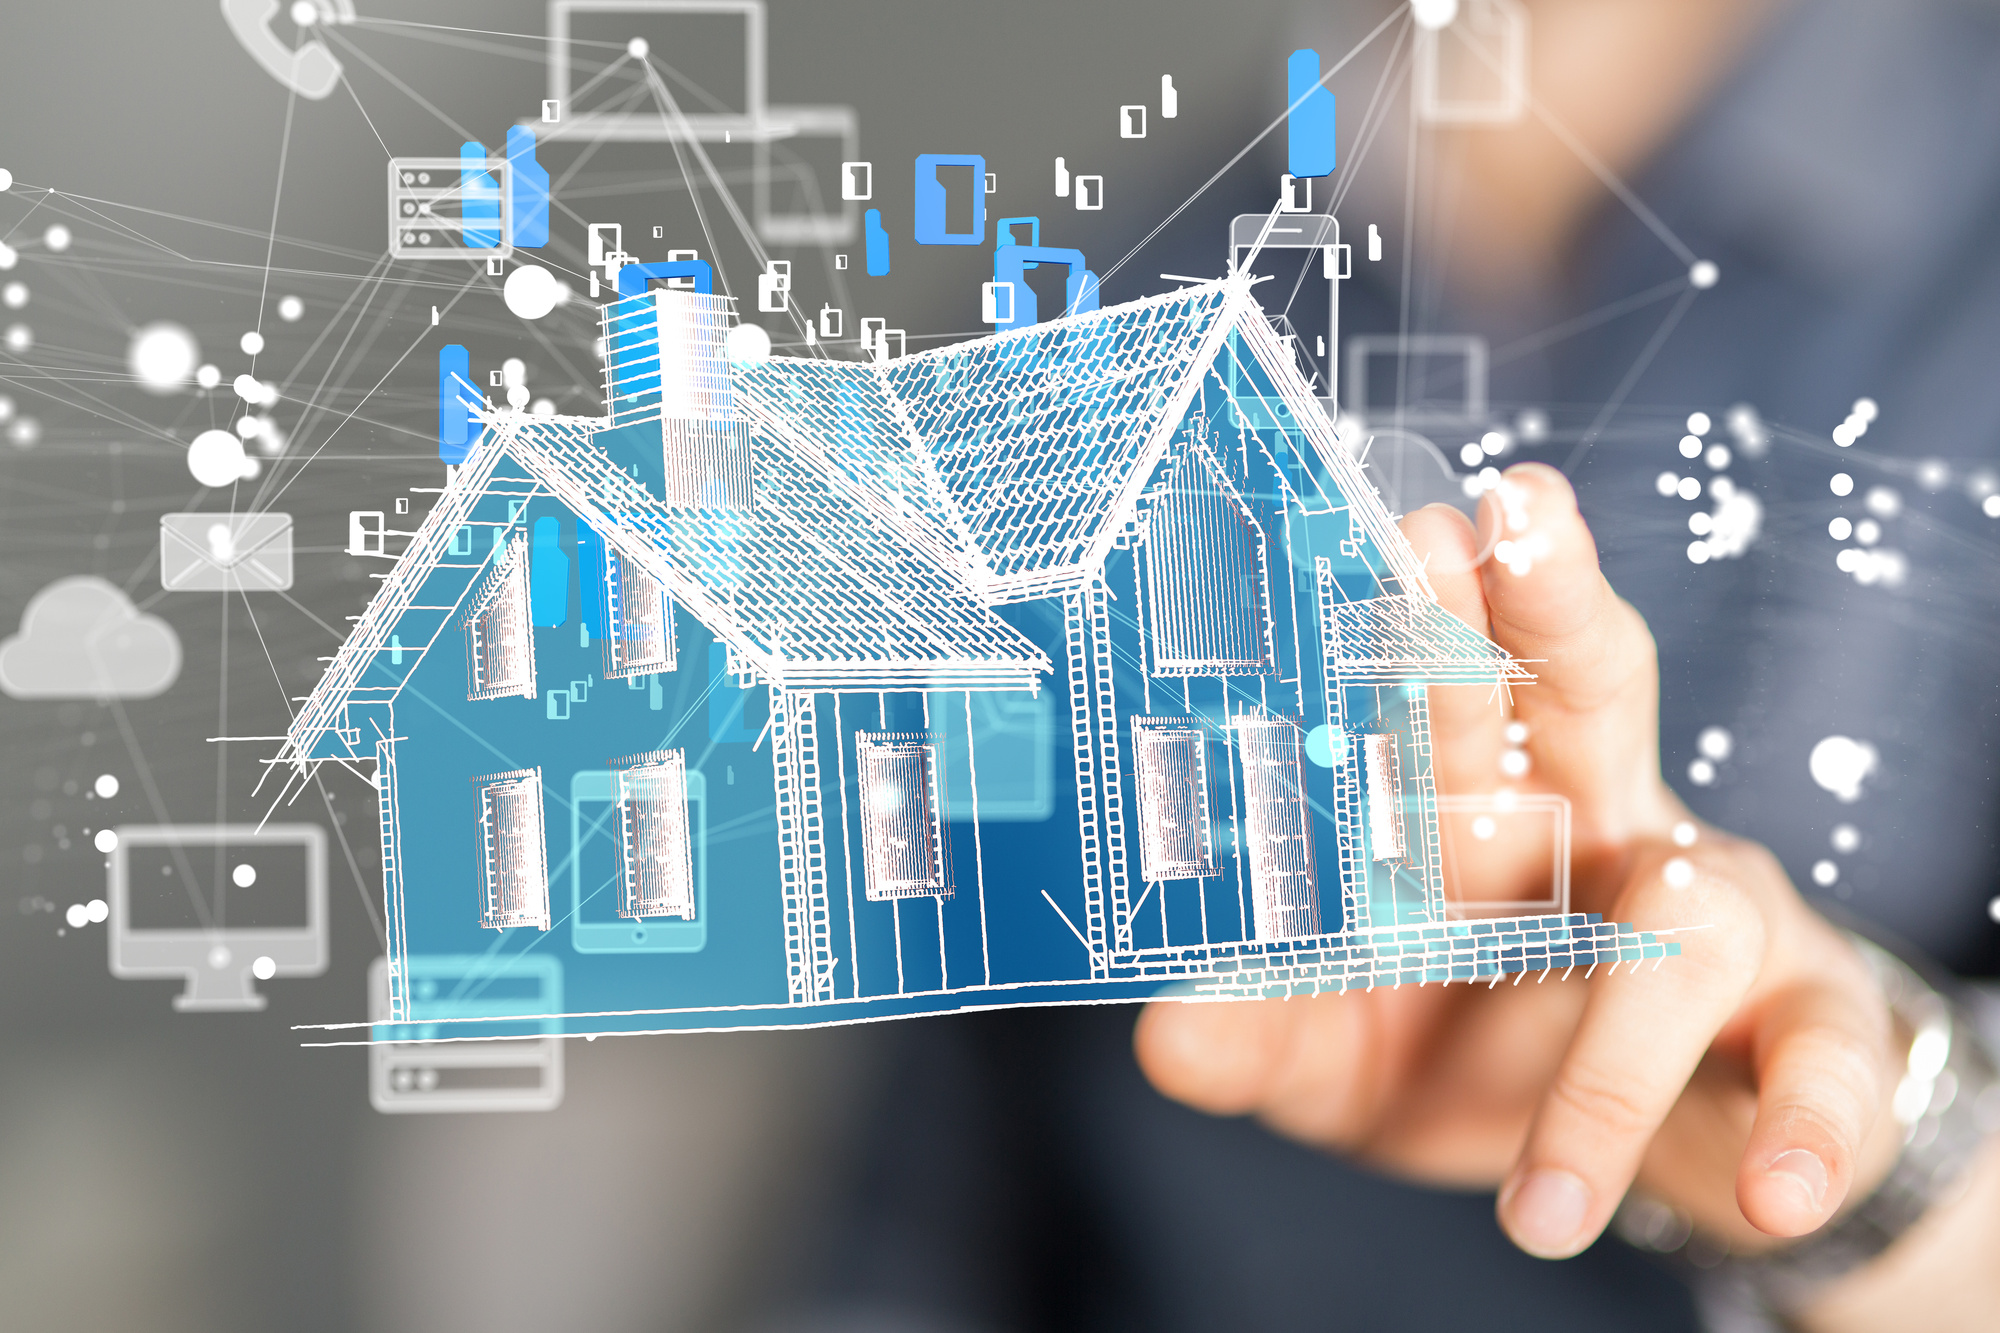 Smart Homes and Buildings